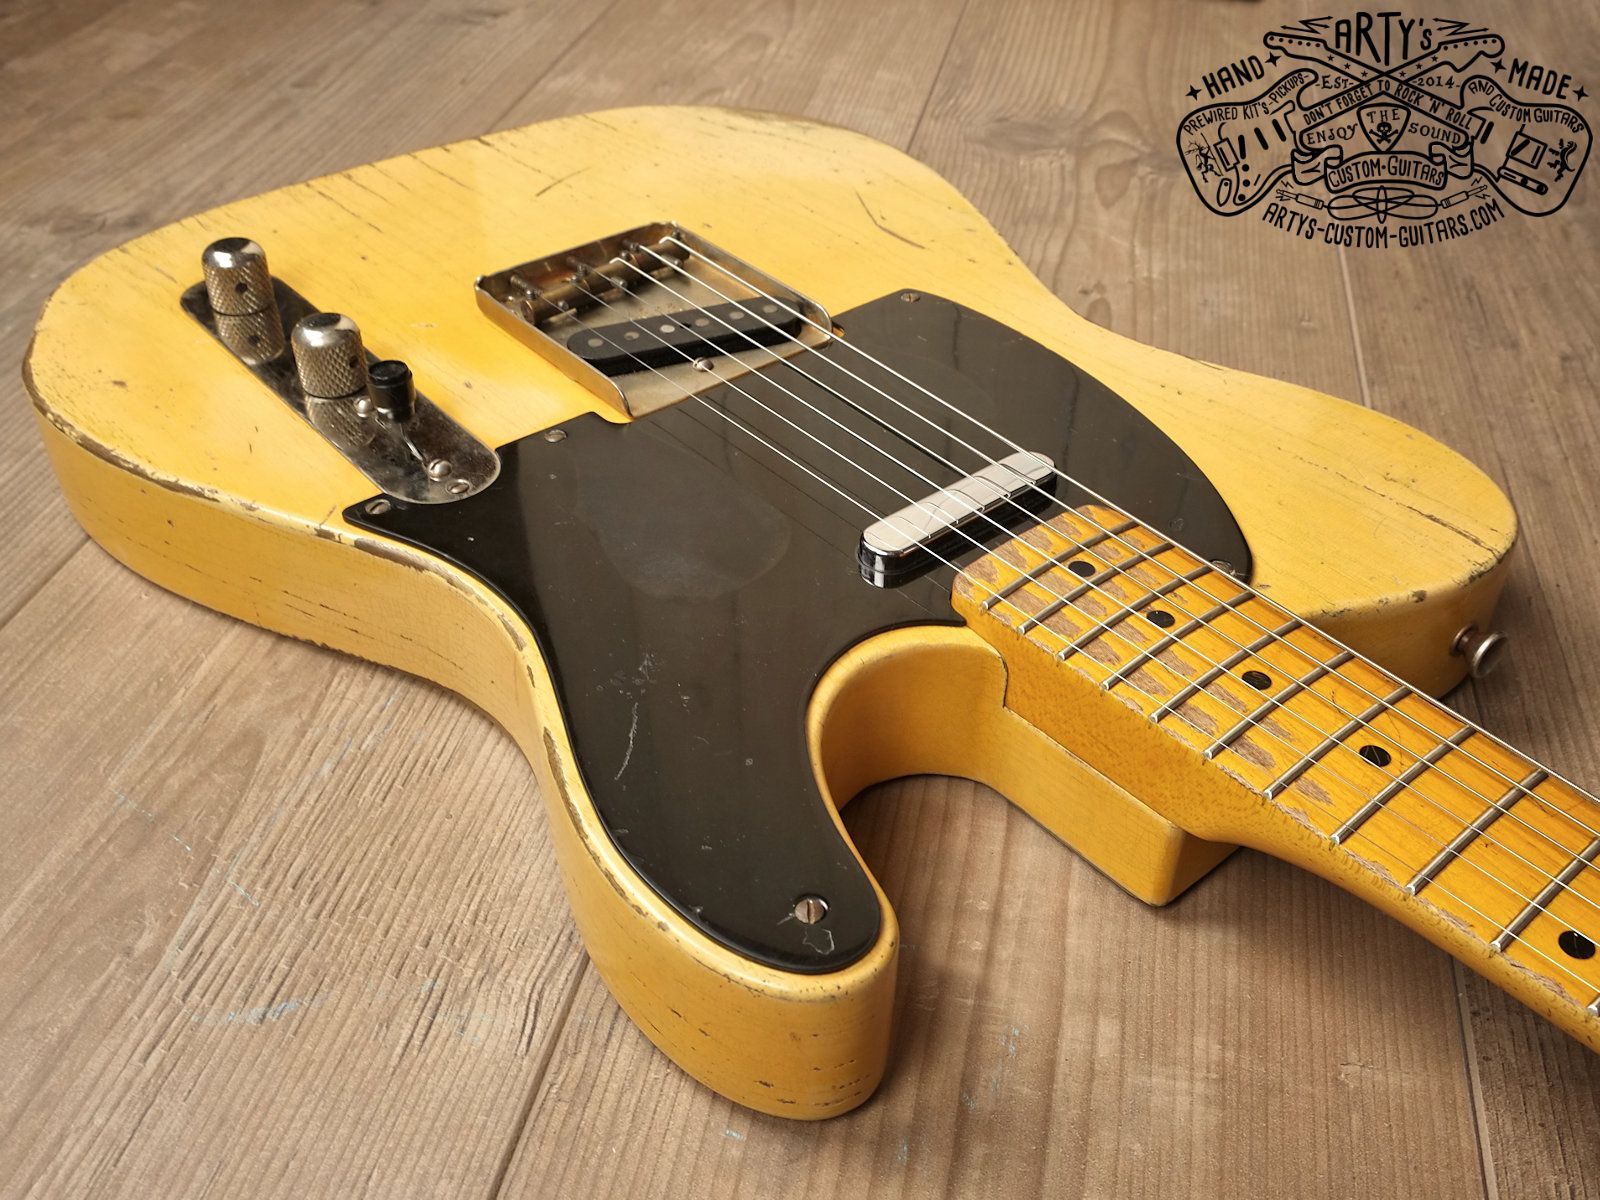 Broadcaster Butterscotch Blonde Telecaster Heavy Relic Tele Maple Neck Swamp Ash Body Bakelite Pickguard Aged Nitro Finish Art Guitar Telecaster Custom Guitars